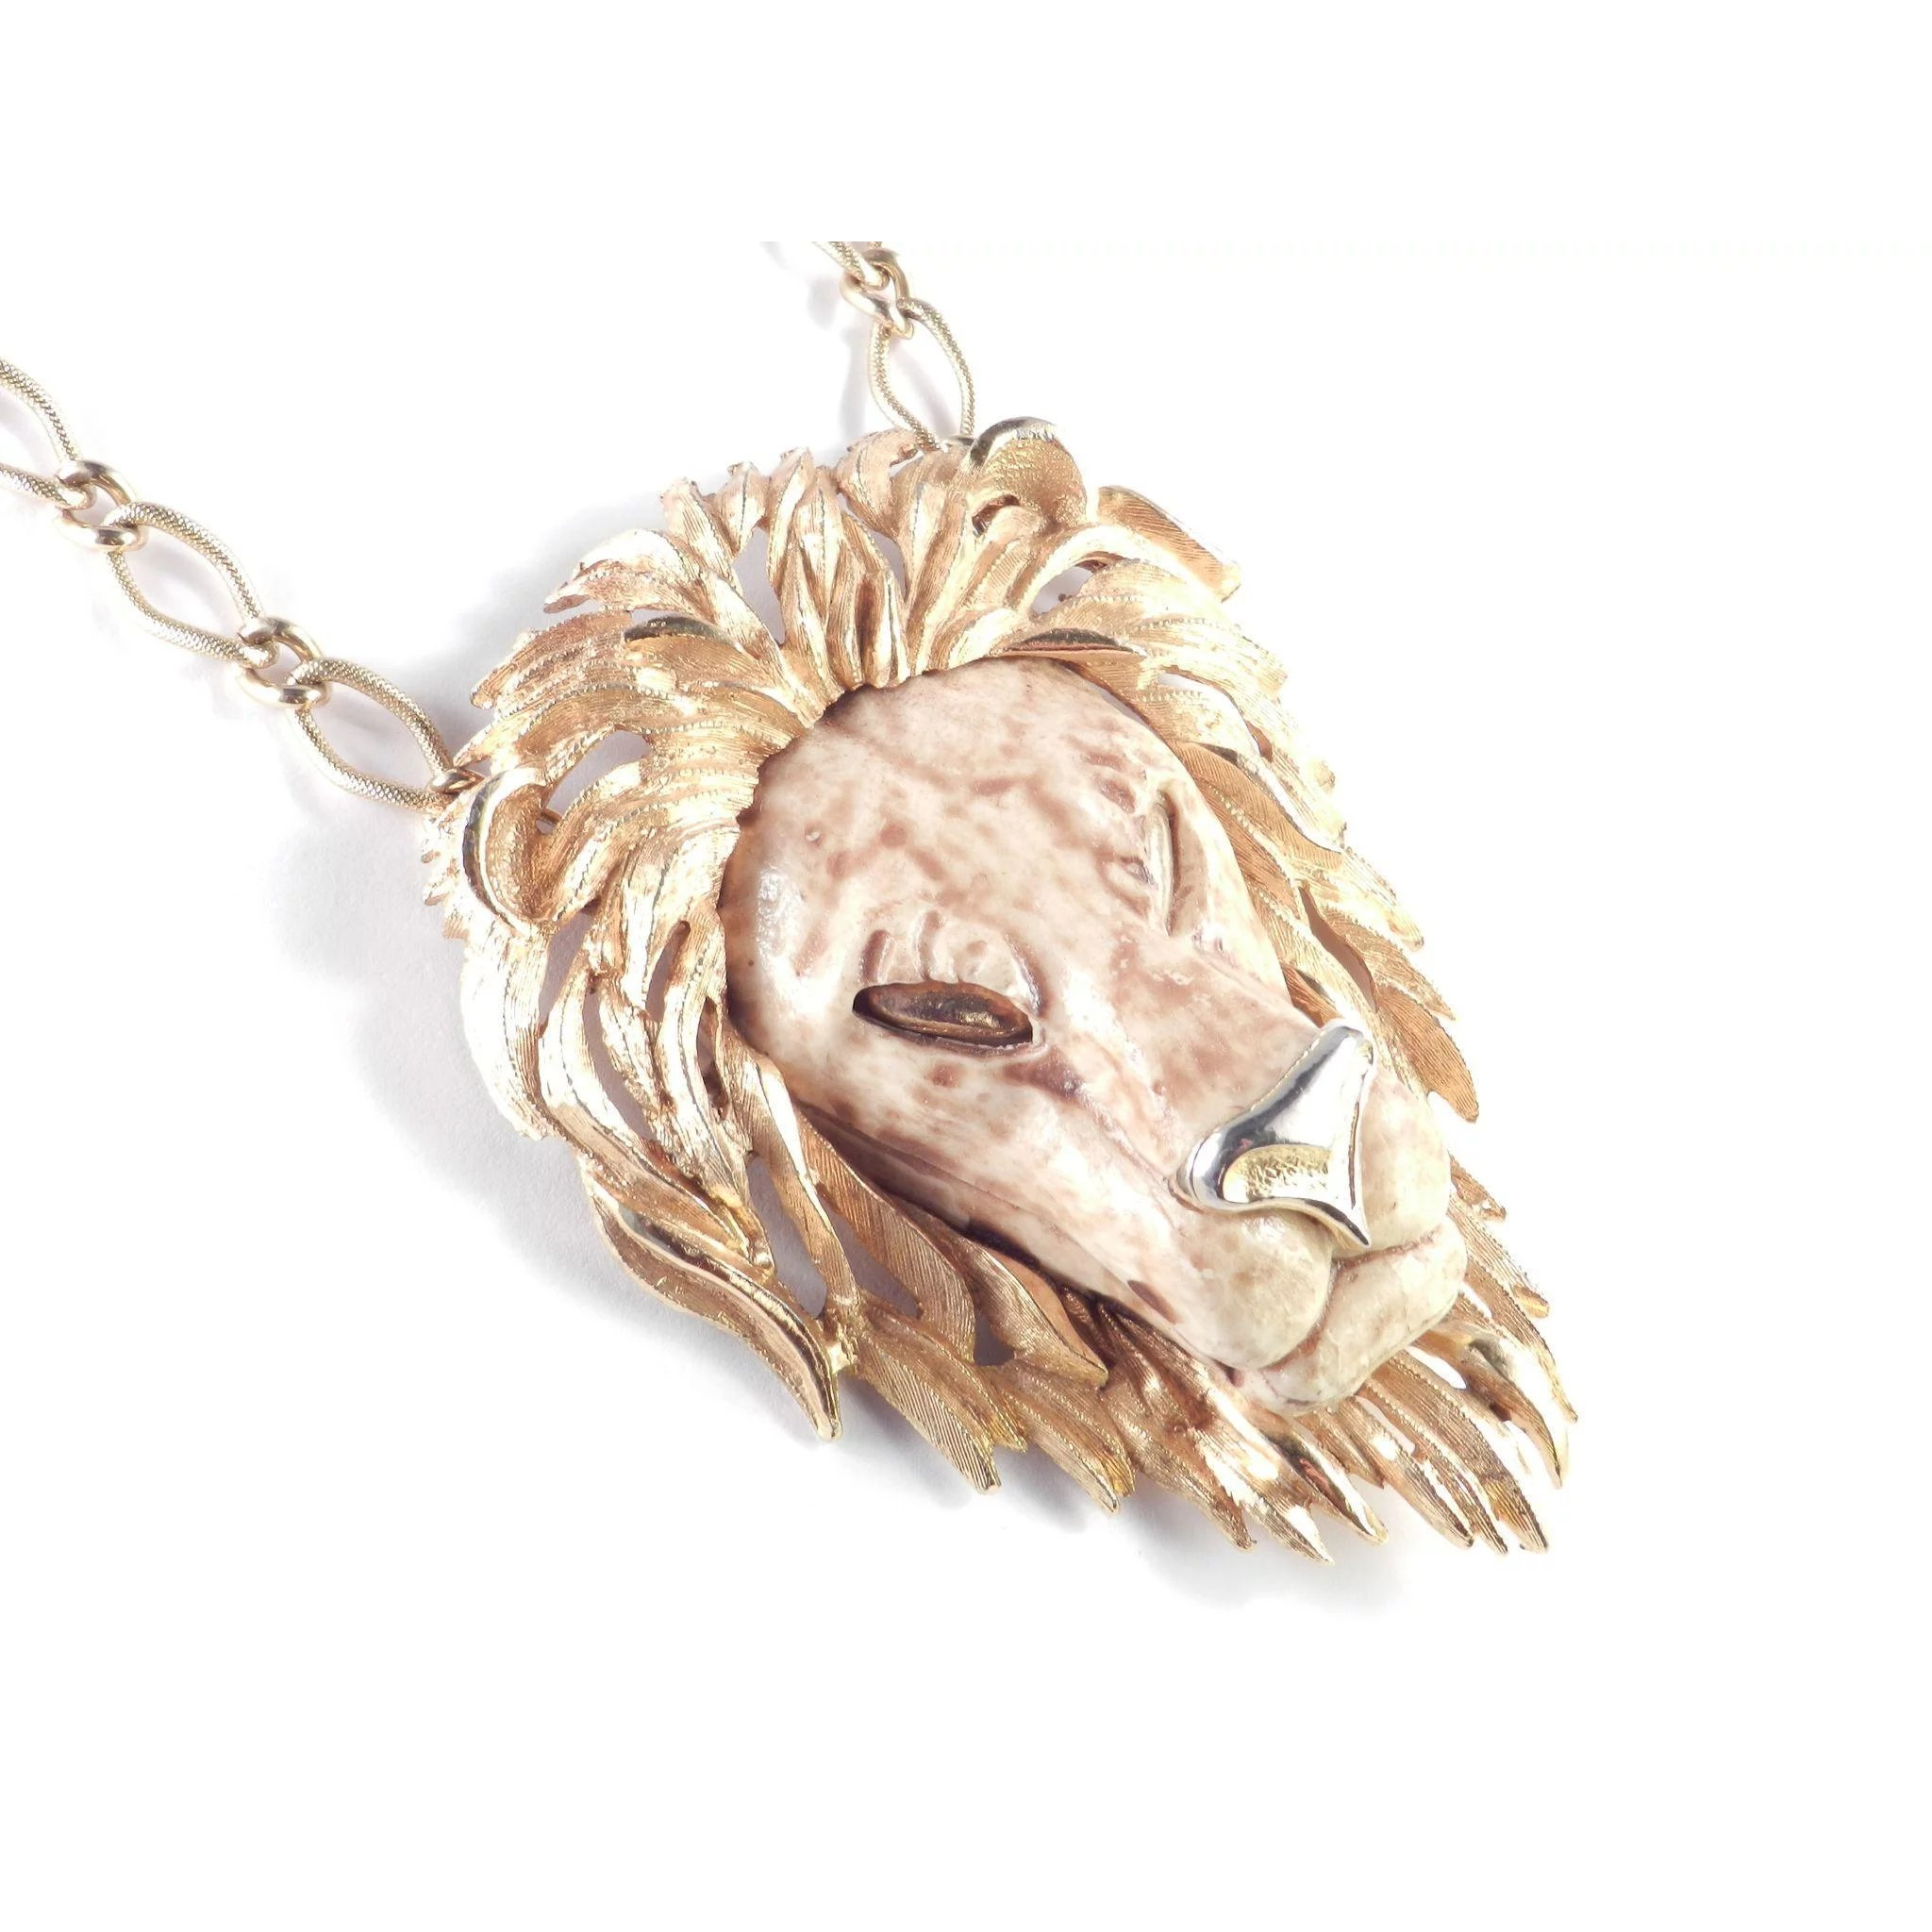 chain franco marley face man pendant amazon com gold hop lion base bob necklace dp hip silver plated